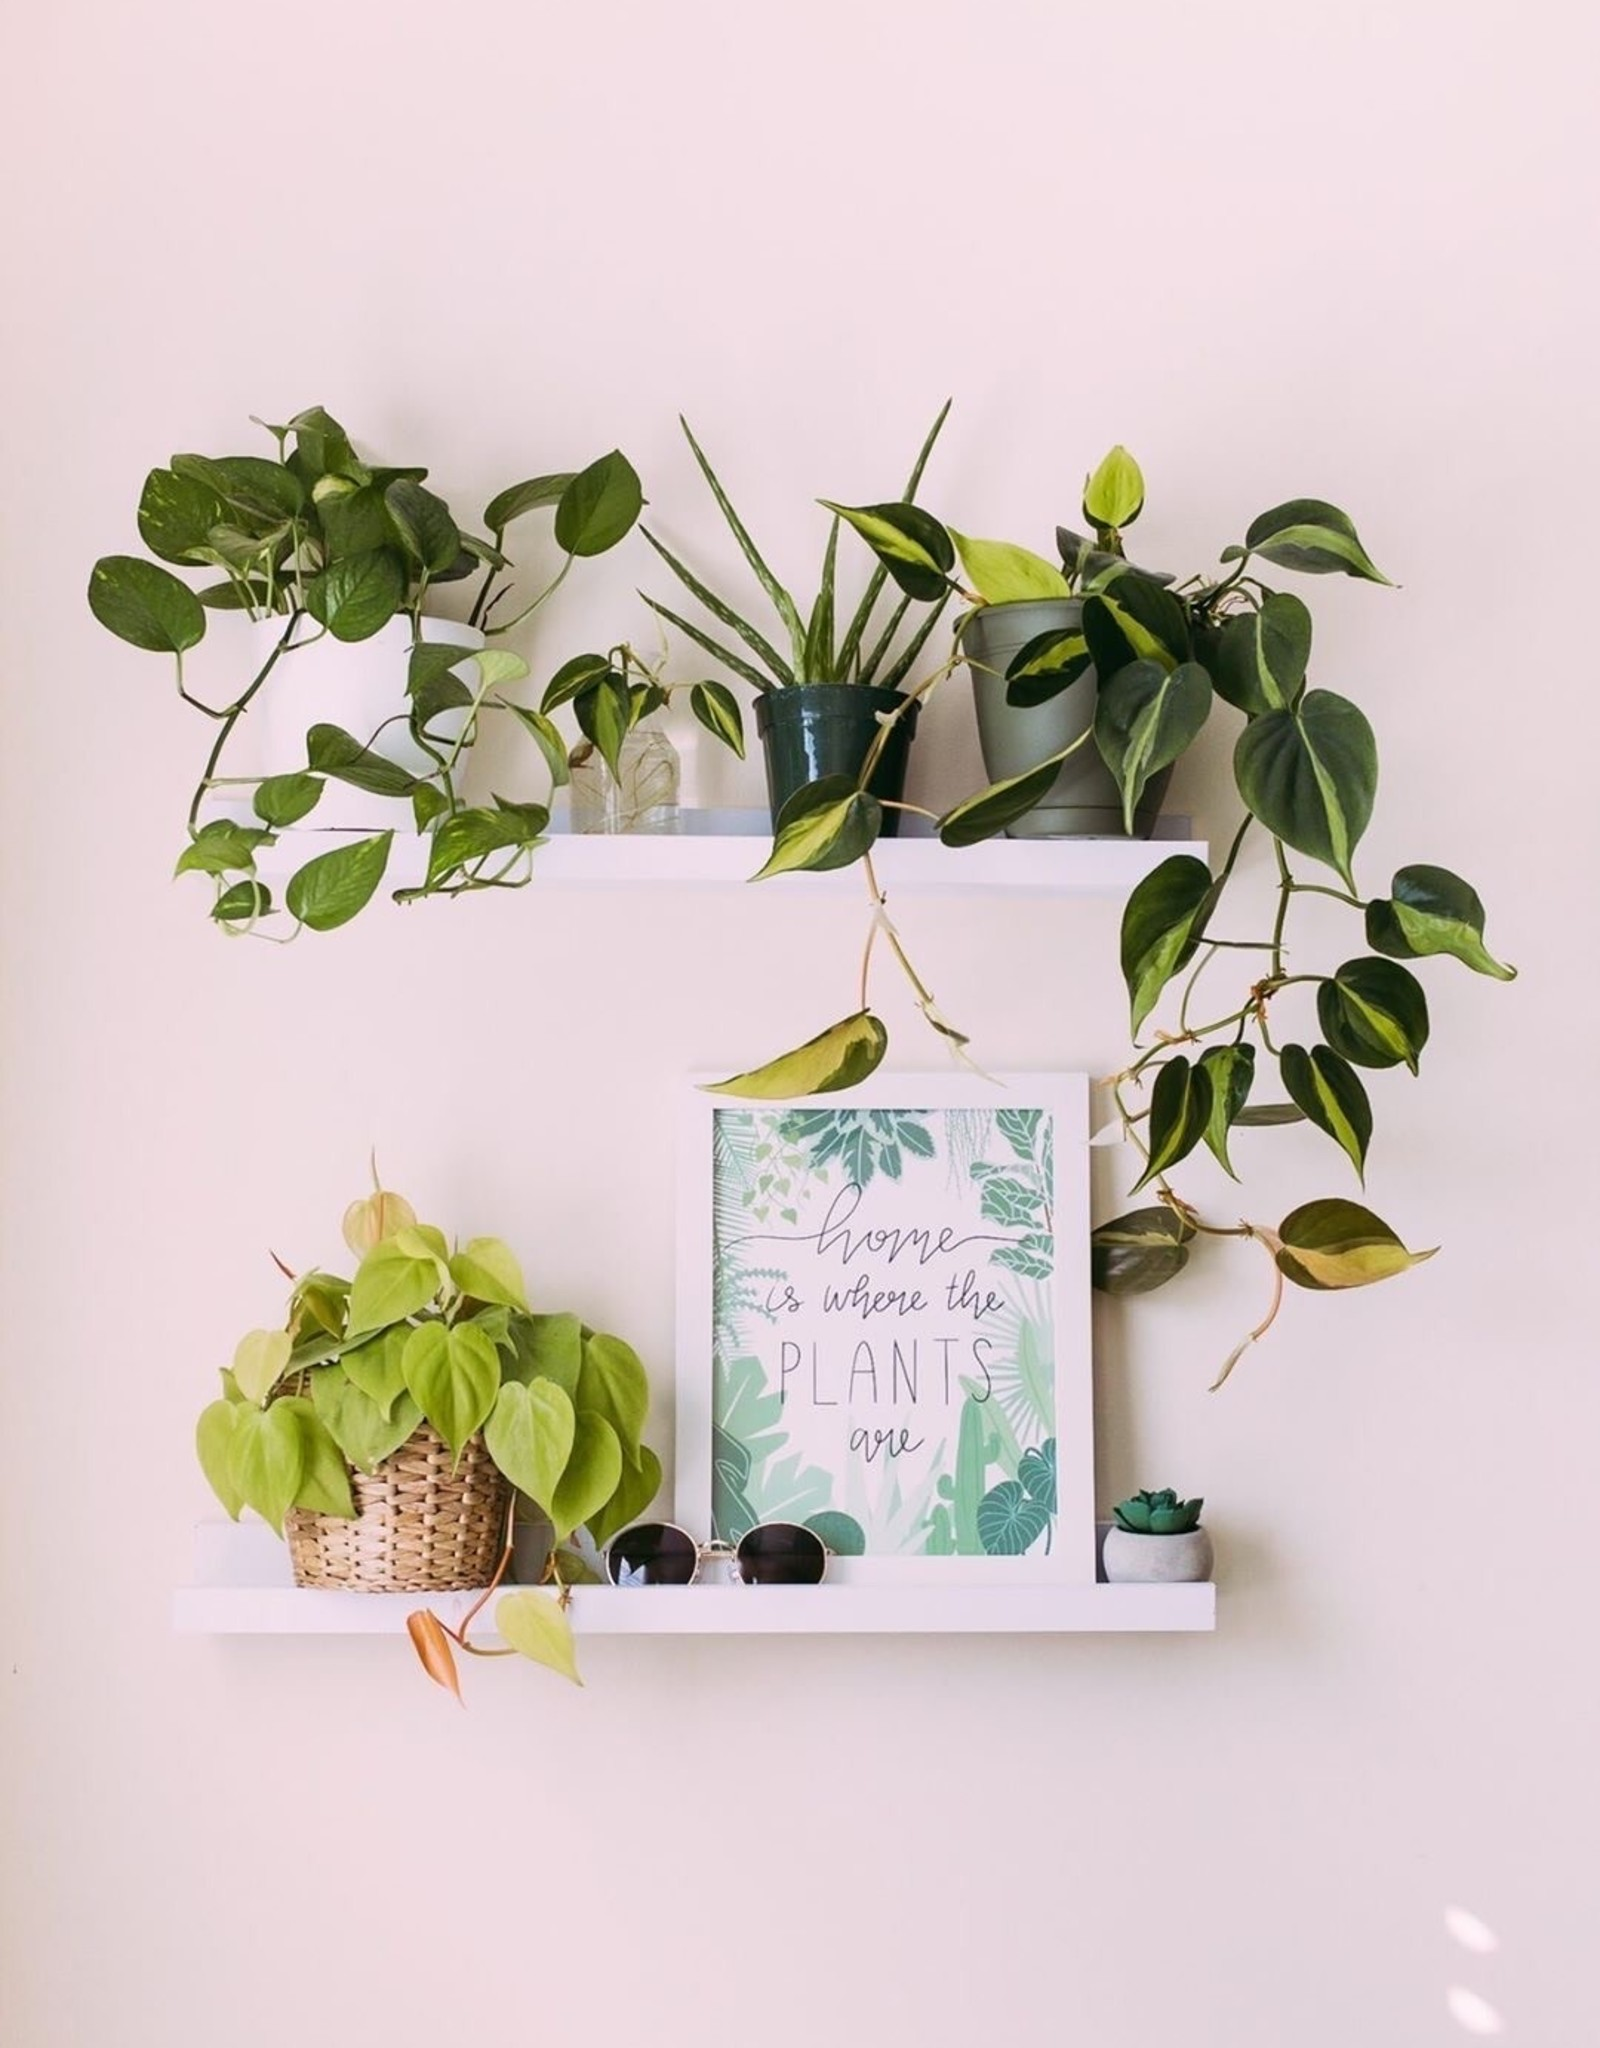 Cardinal Directions CD Home is Where the Plants are Print